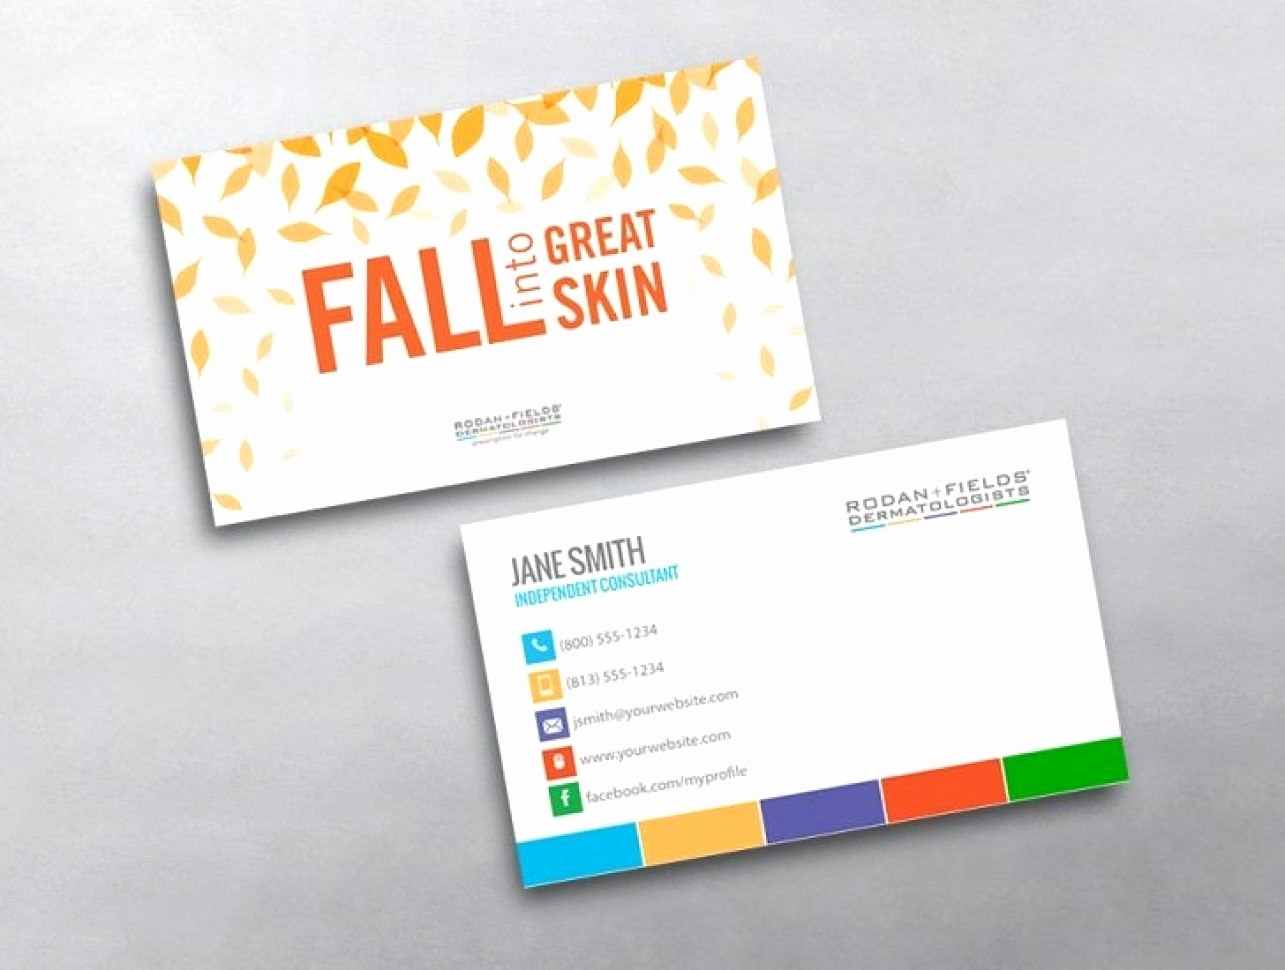 Luxury Rodan And Fields Business Card Template  Hydraexecutives Regarding Rodan And Fields Business Card Template